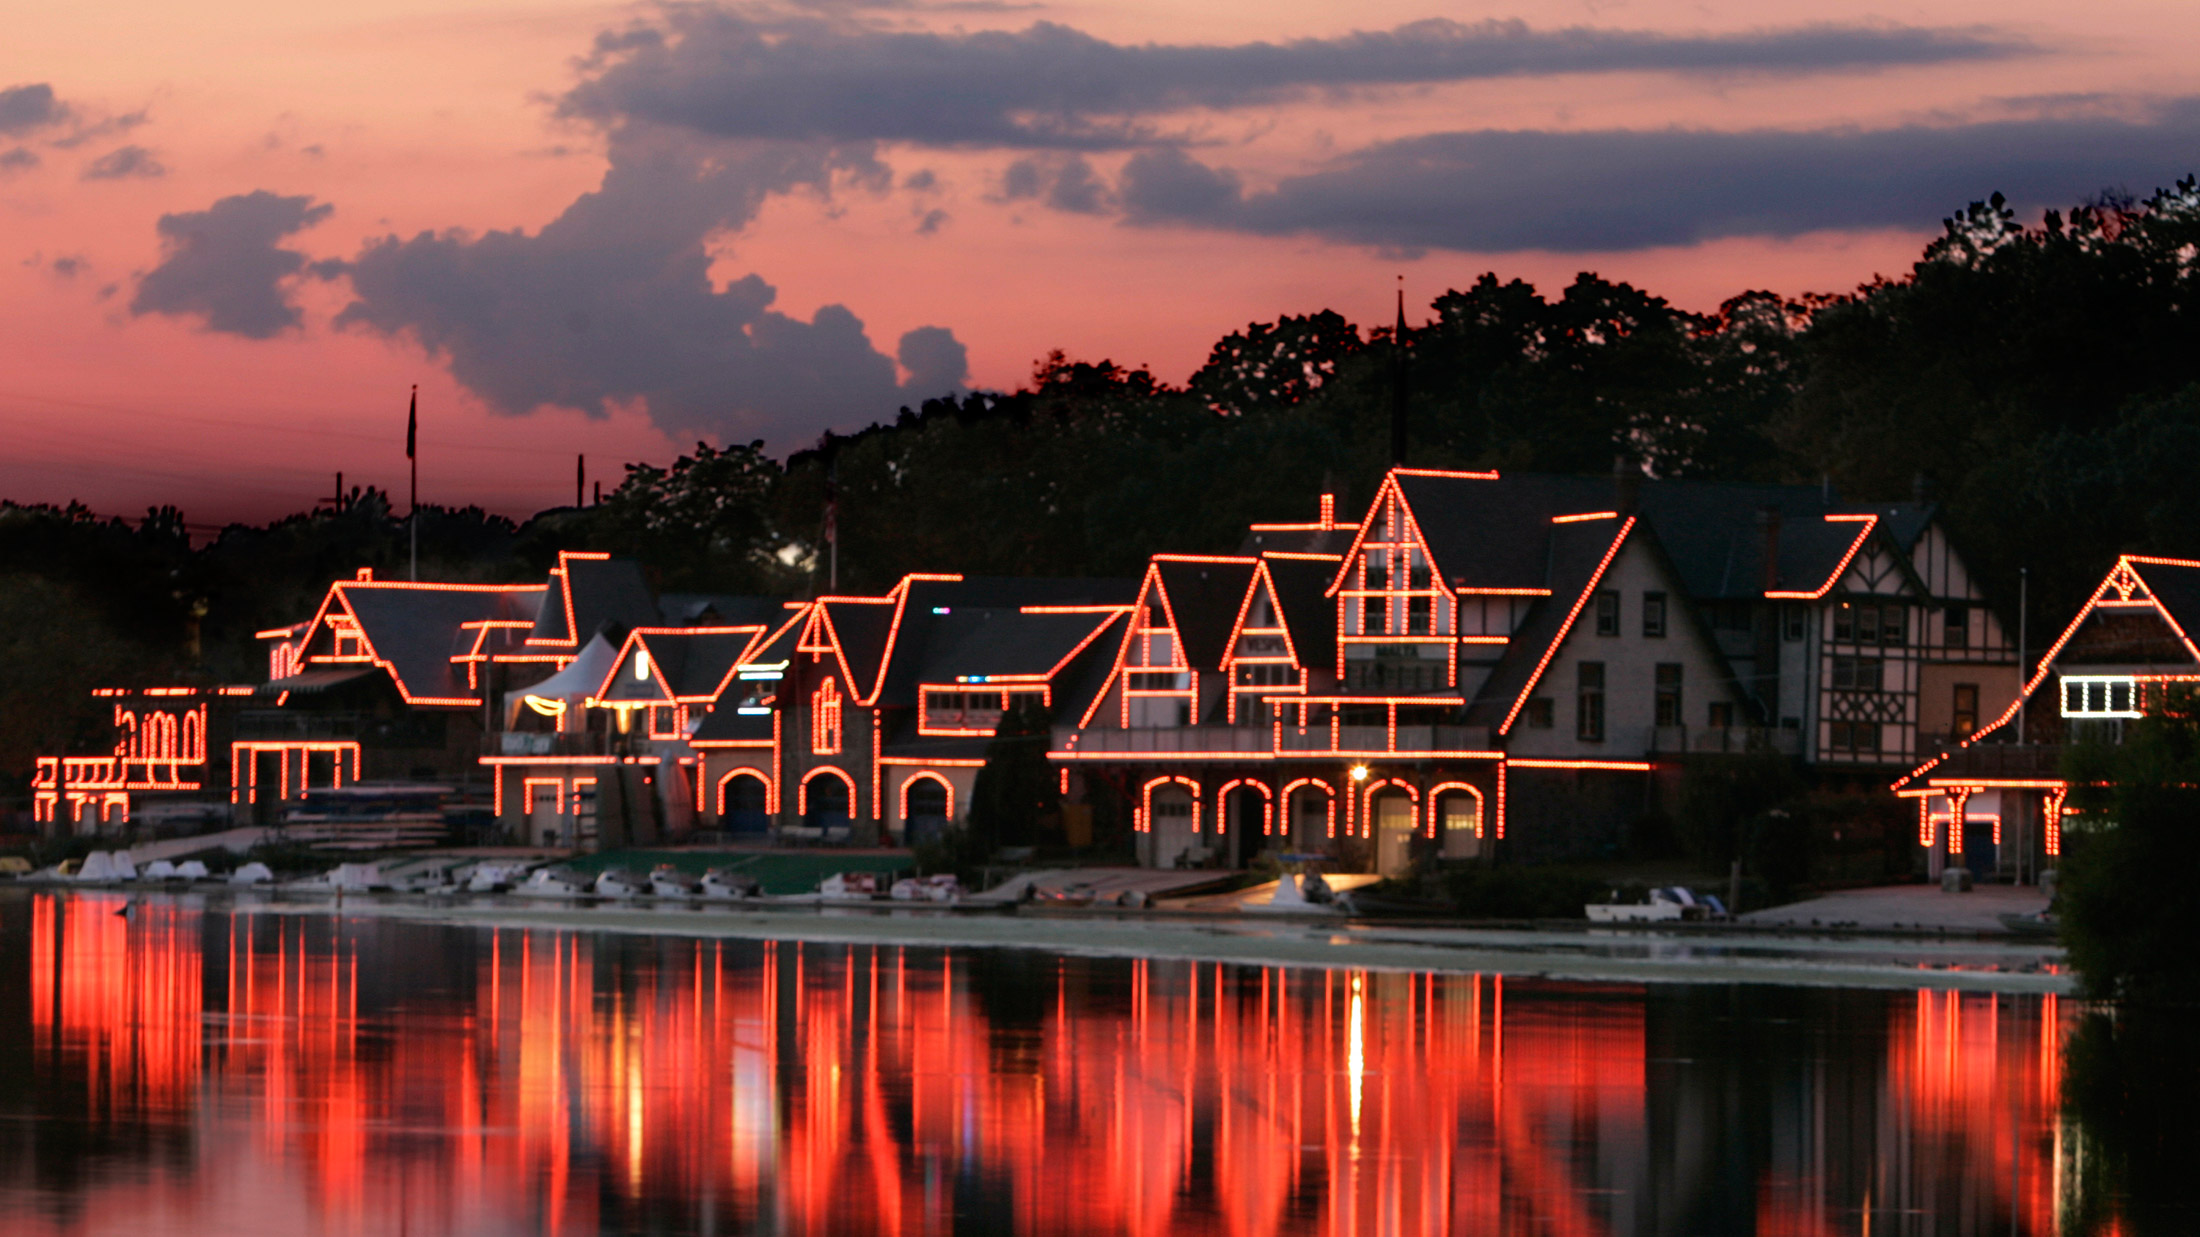 Boathouse-Row-sunset-R-Kennedy-2200VP